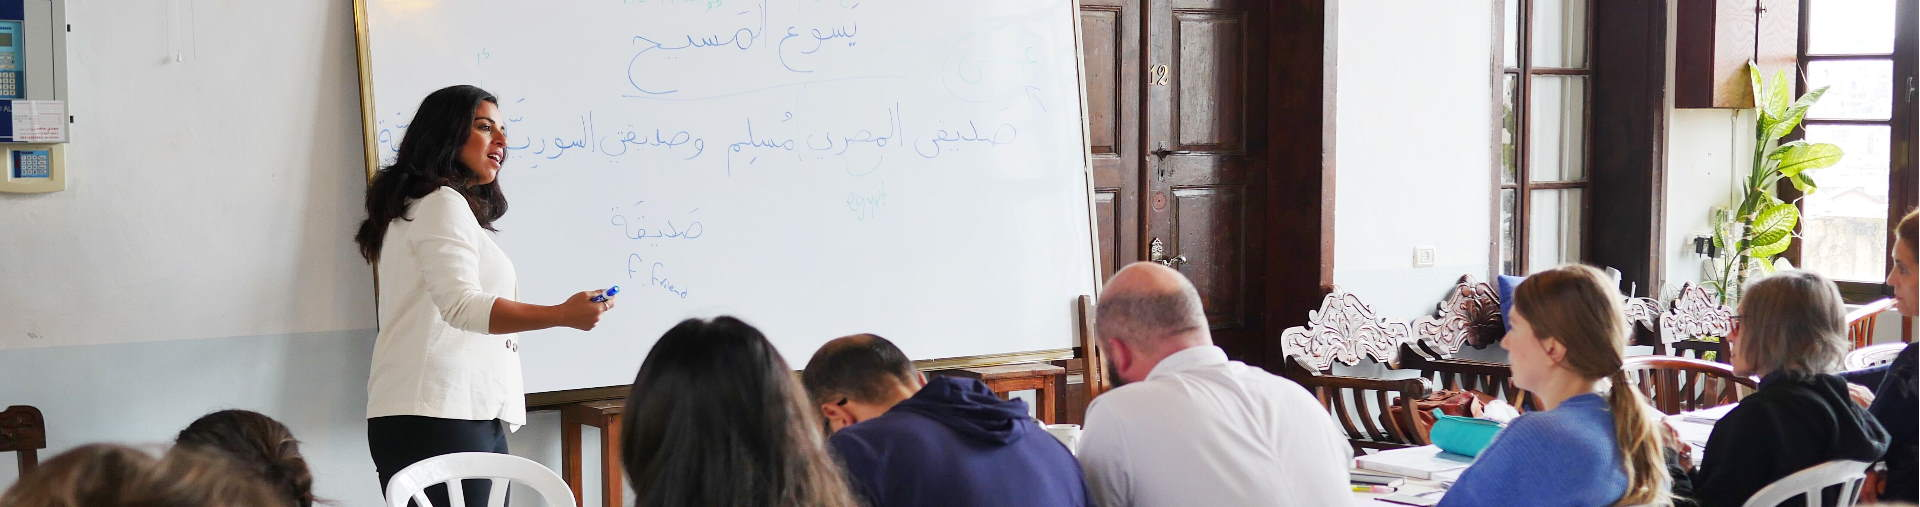 ARABIC IMMERSION COURSE